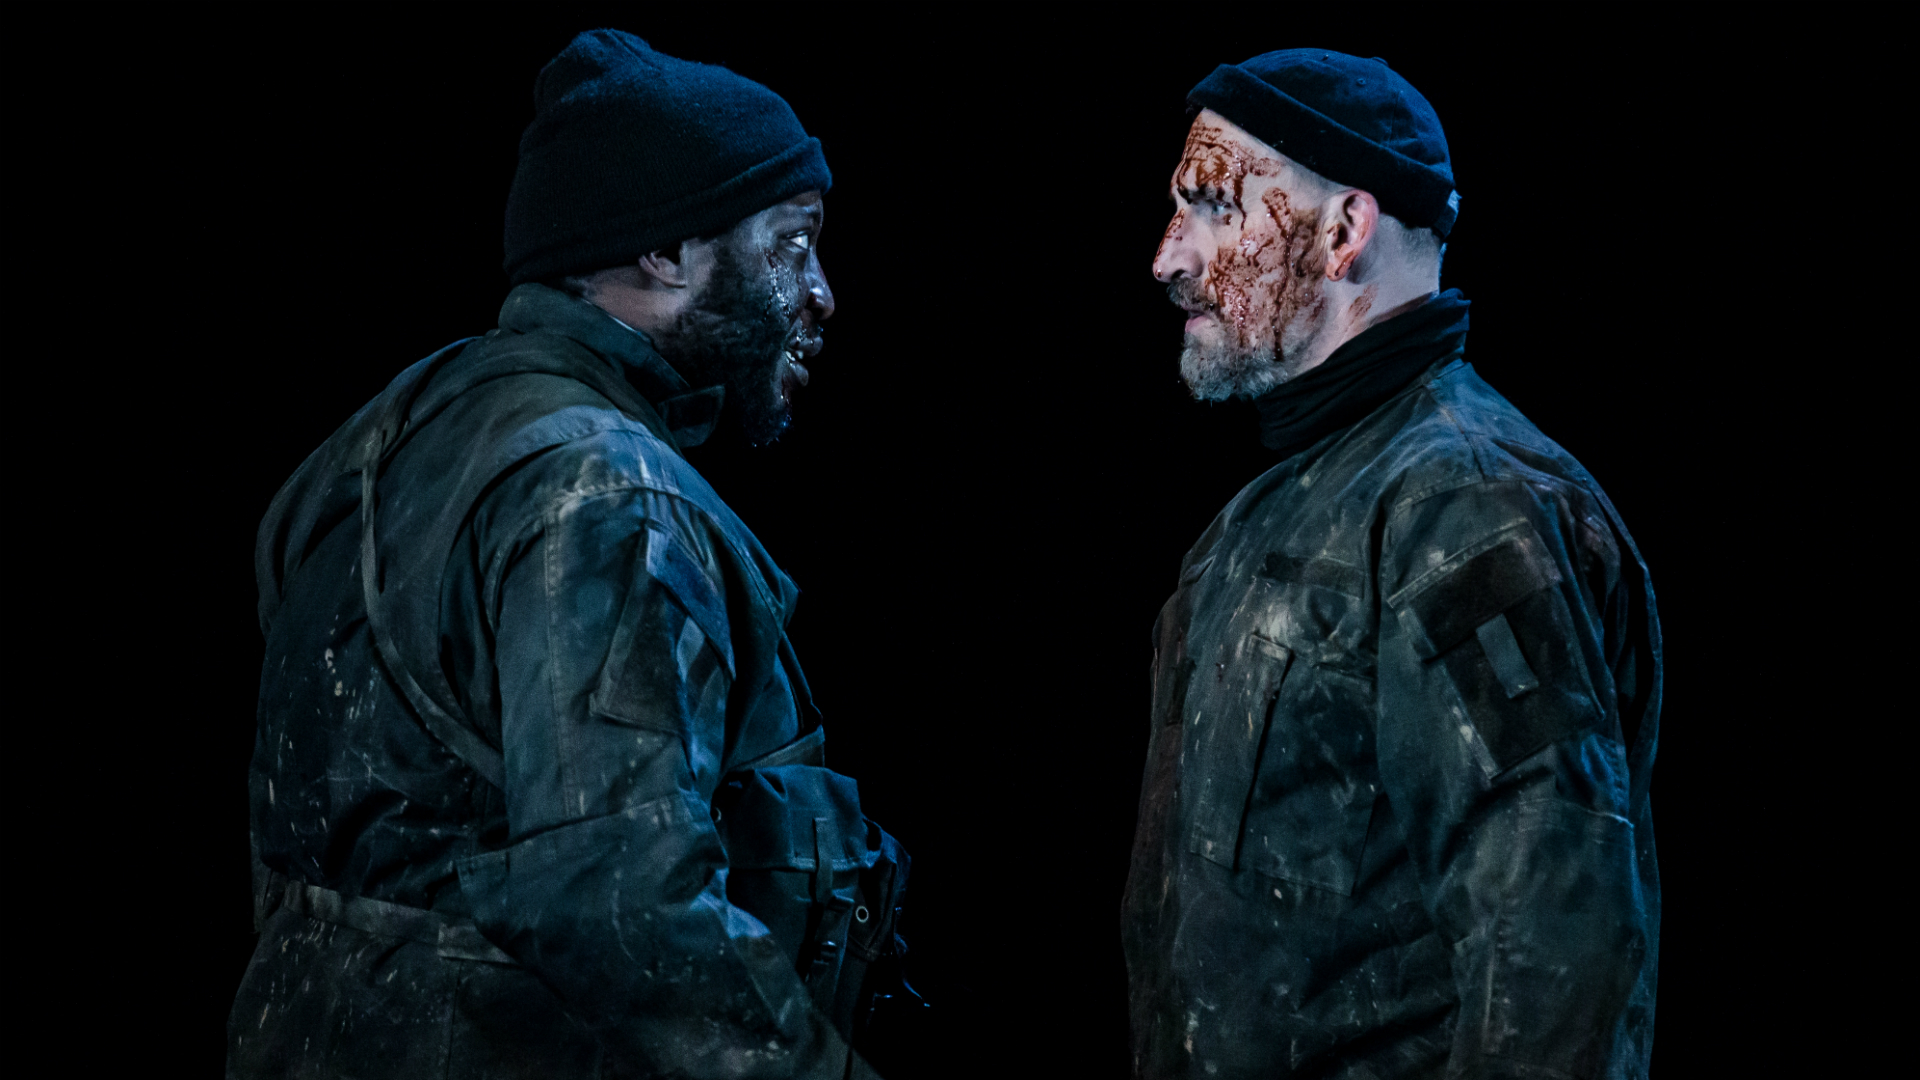 Macbeth at the Barbican. Credit: Richard Davenport. Image courtesy of Royal Shakespeare Company.